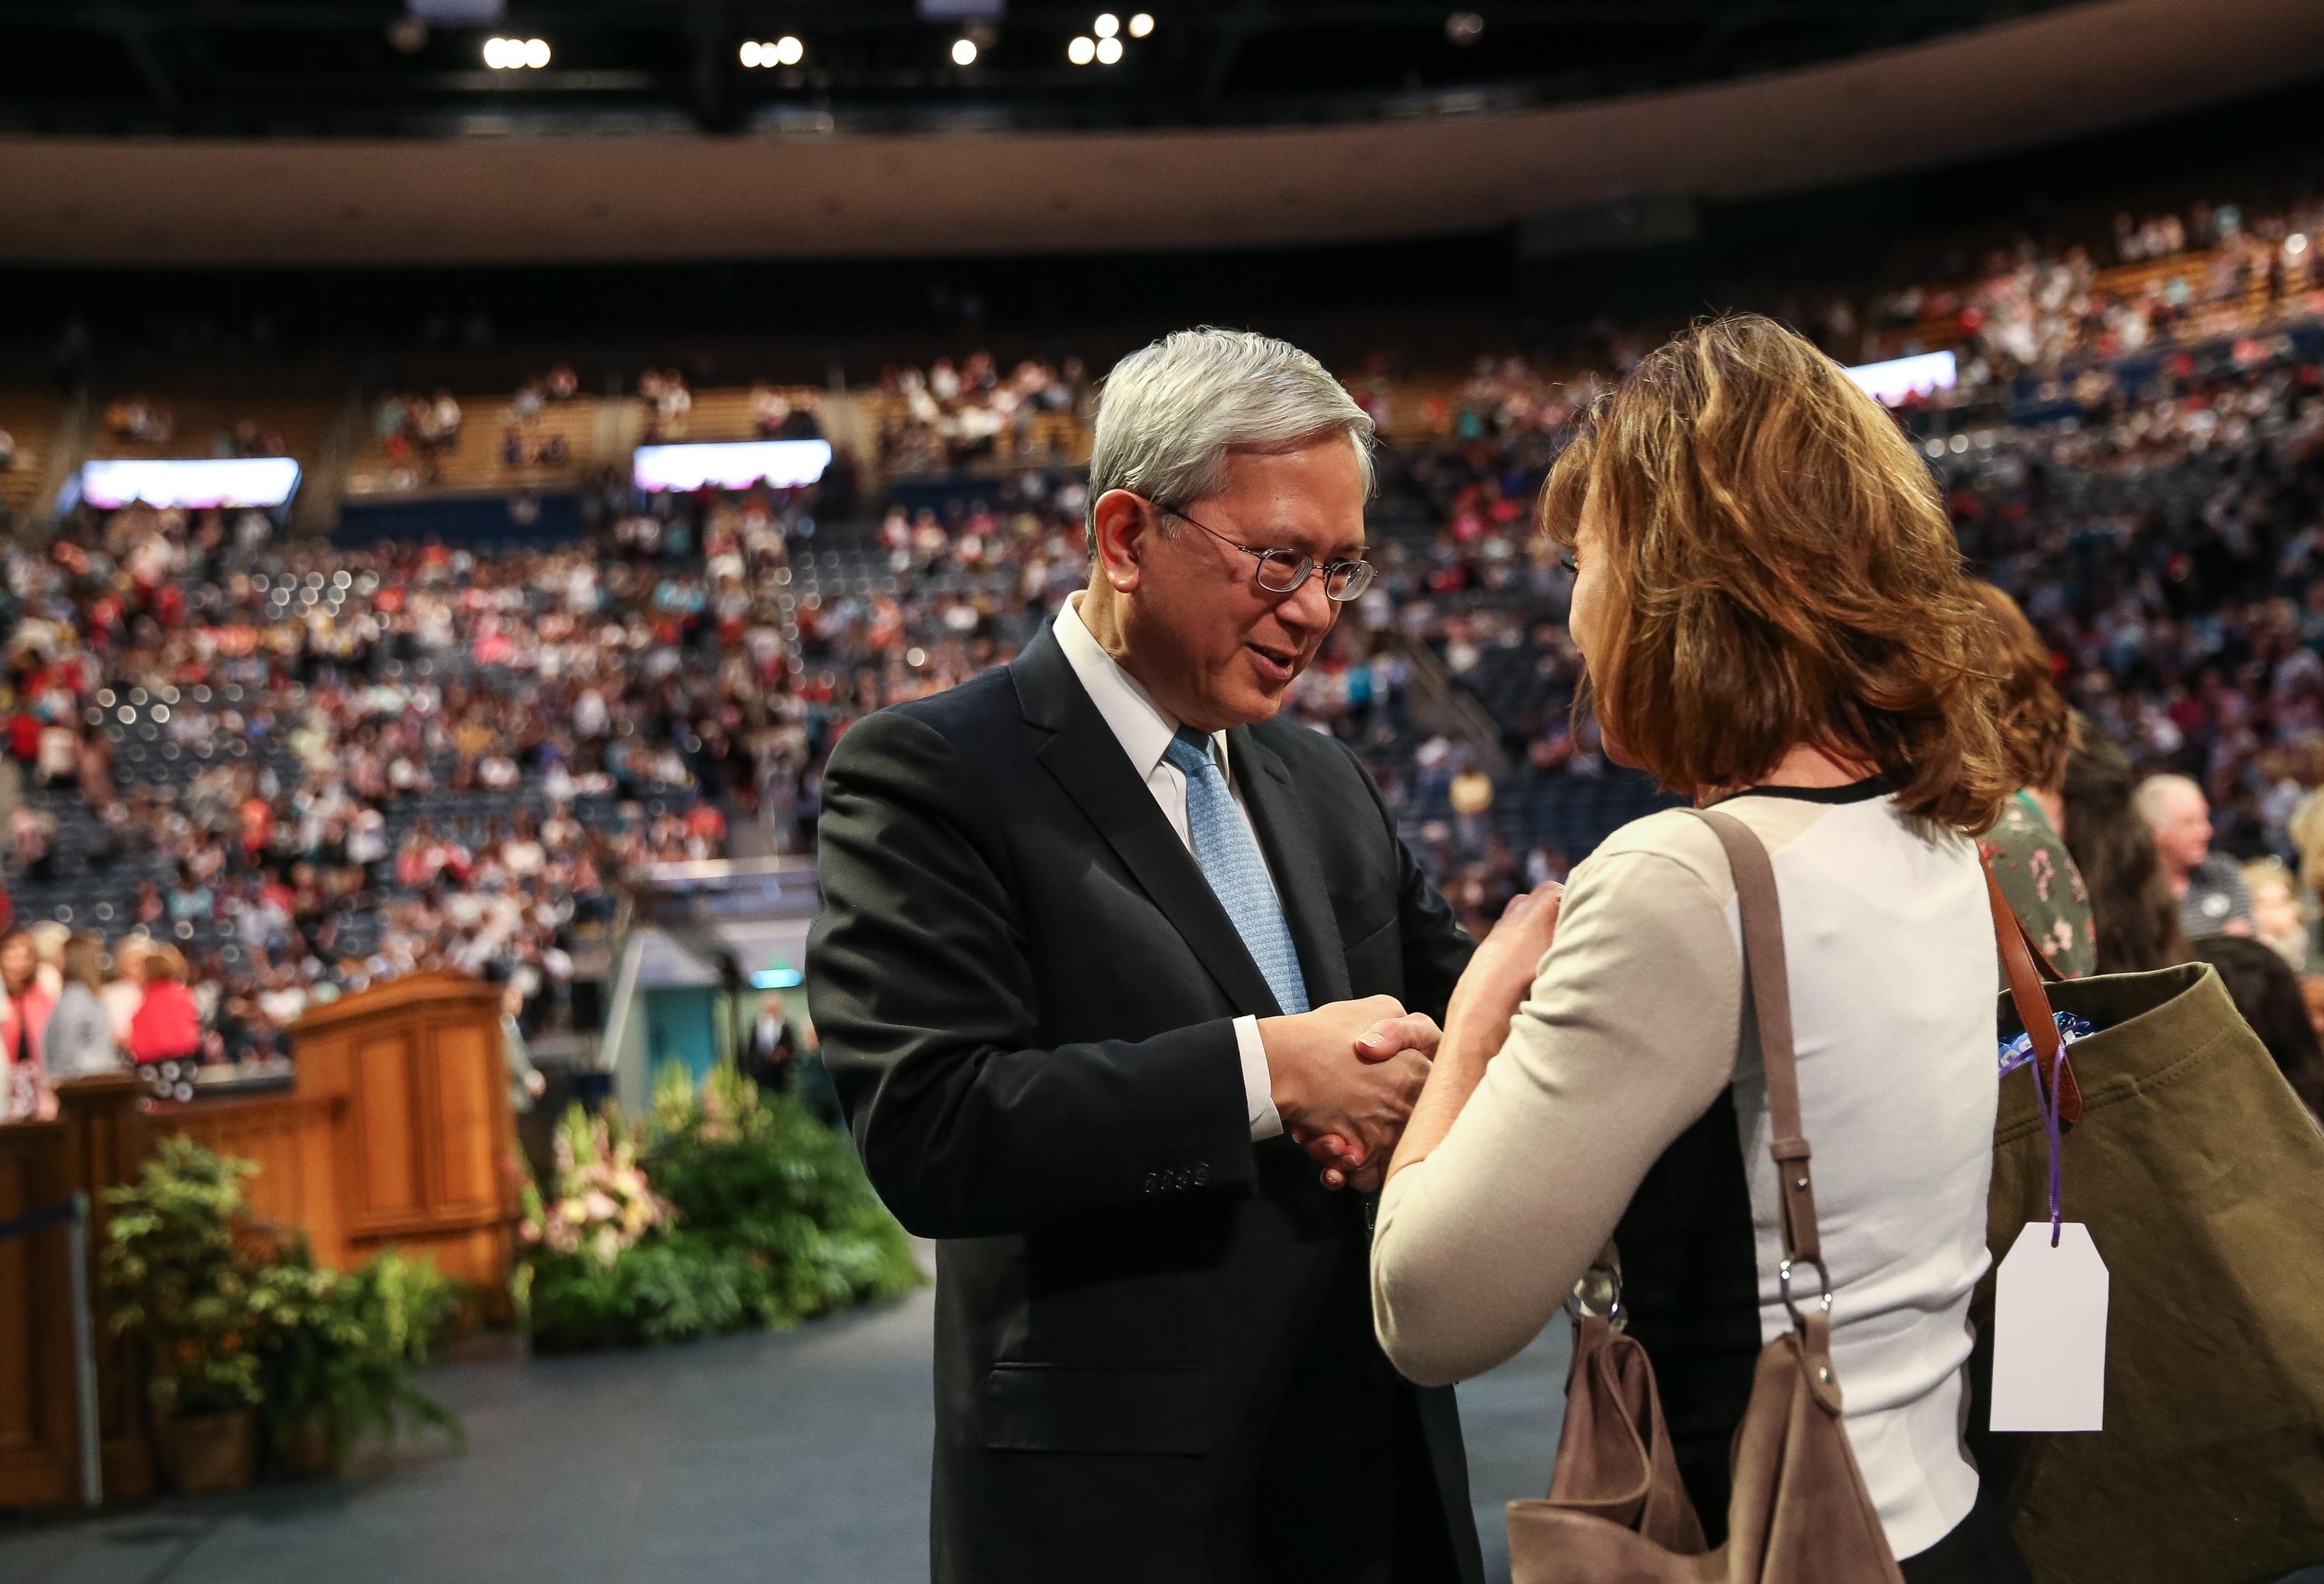 Elder Gerrit W. Gong, of the Quorum of the Twelve Apostles of the LDS Church, greets Peggy Hodson, of Santa Barbara, Calif., after Gong spoke at the BYU Women's Conference at the Marriott Center in Provo on Friday, May 4, 2018.